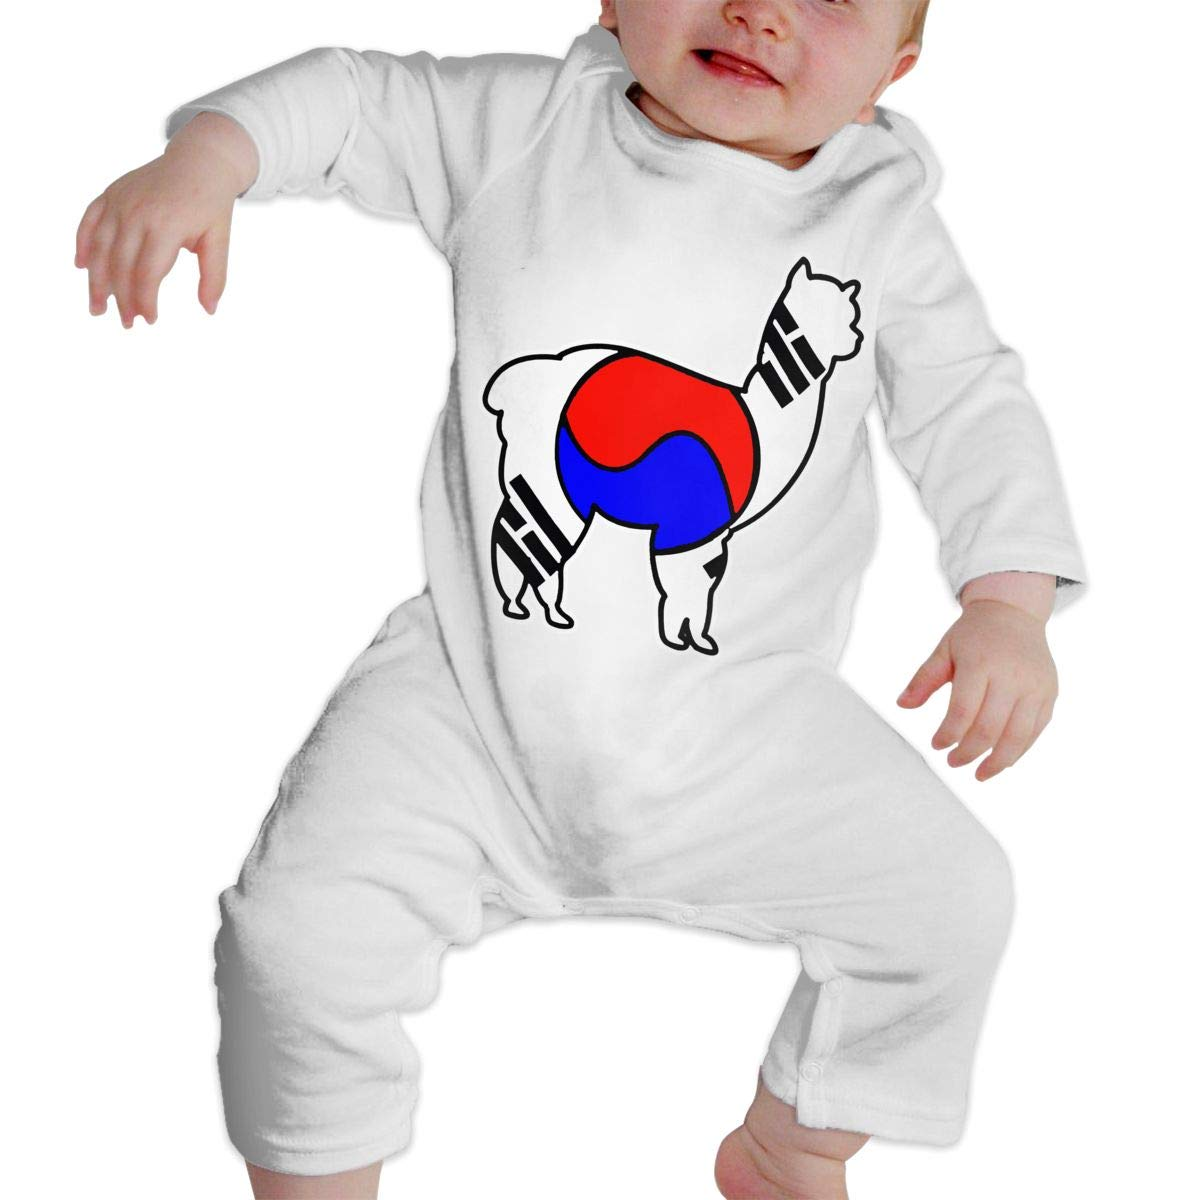 A1BY-5US Baby Infant Toddler Cotton Long Sleeve Korean Alpaca Romper Bodysuit Funny Printed Romper Clothes